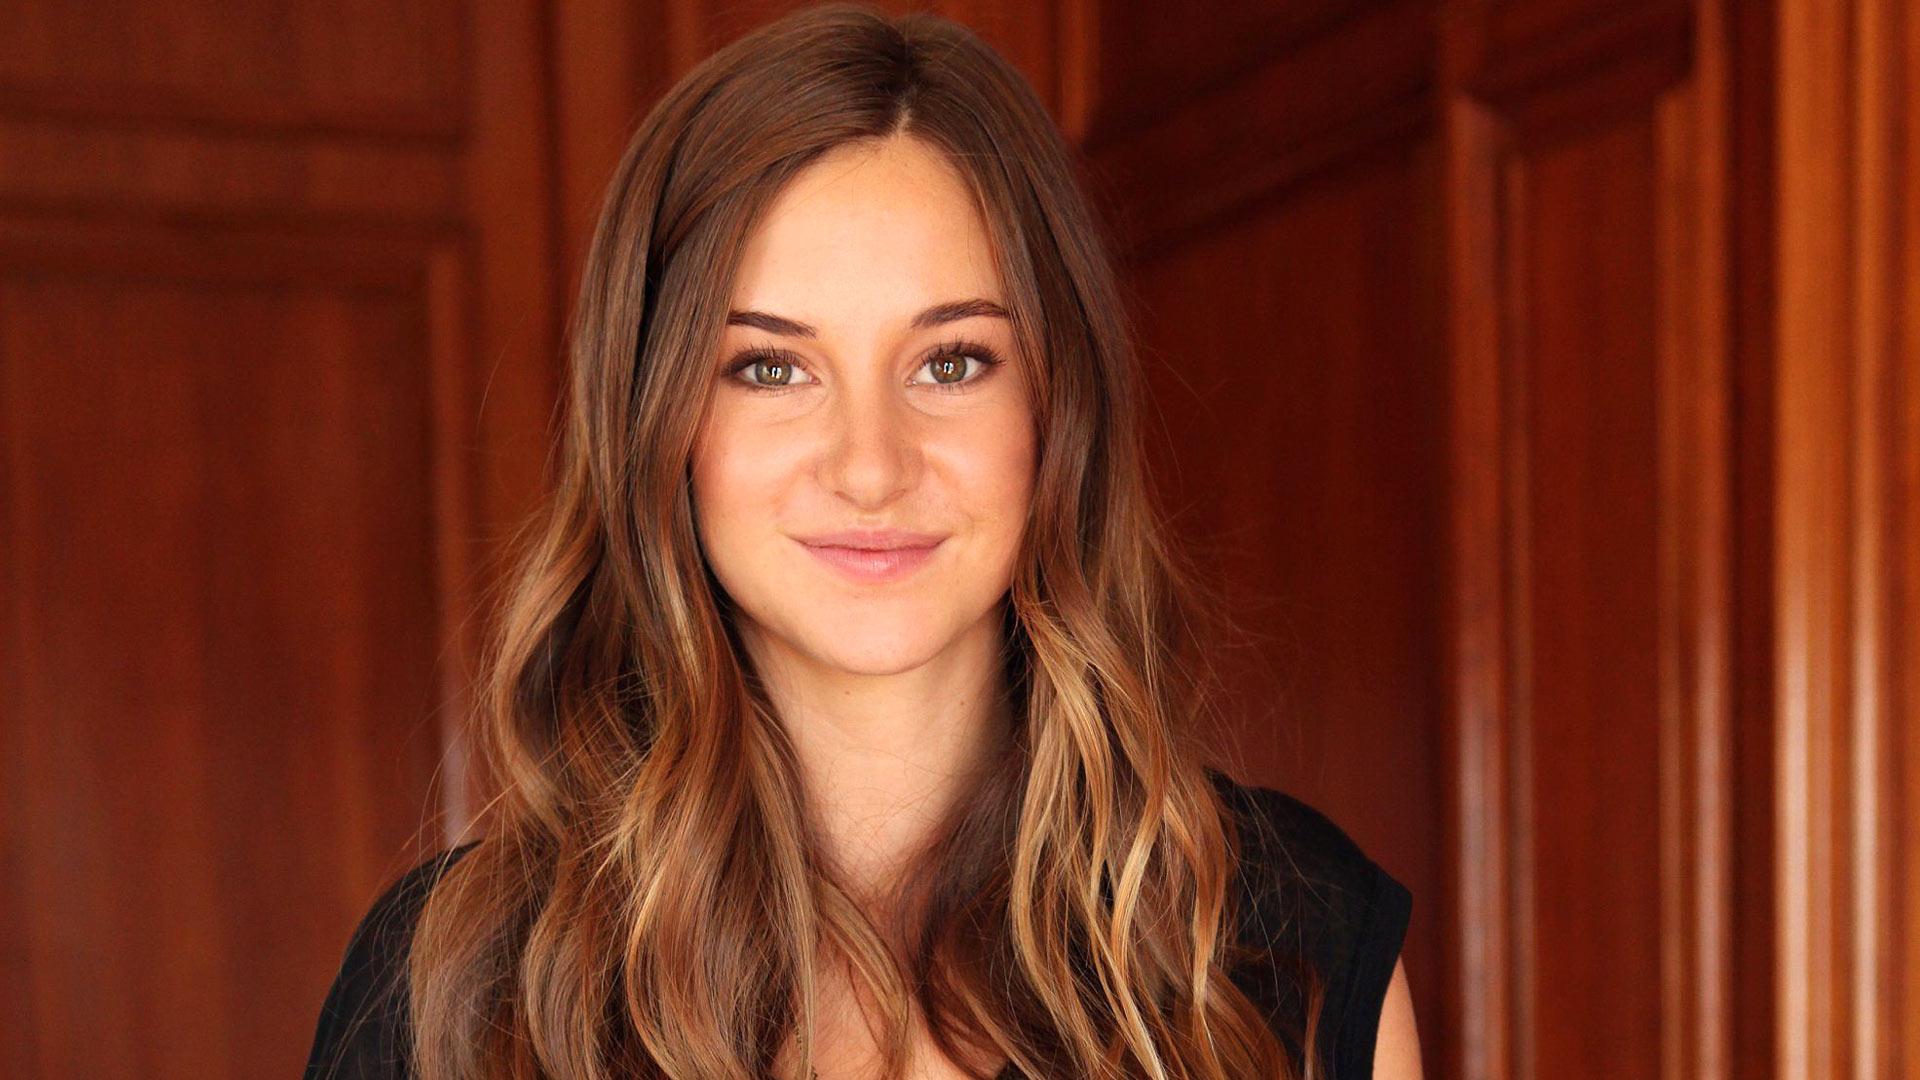 Shailene Woodley Wallpapers Pictures Images 1920x1080